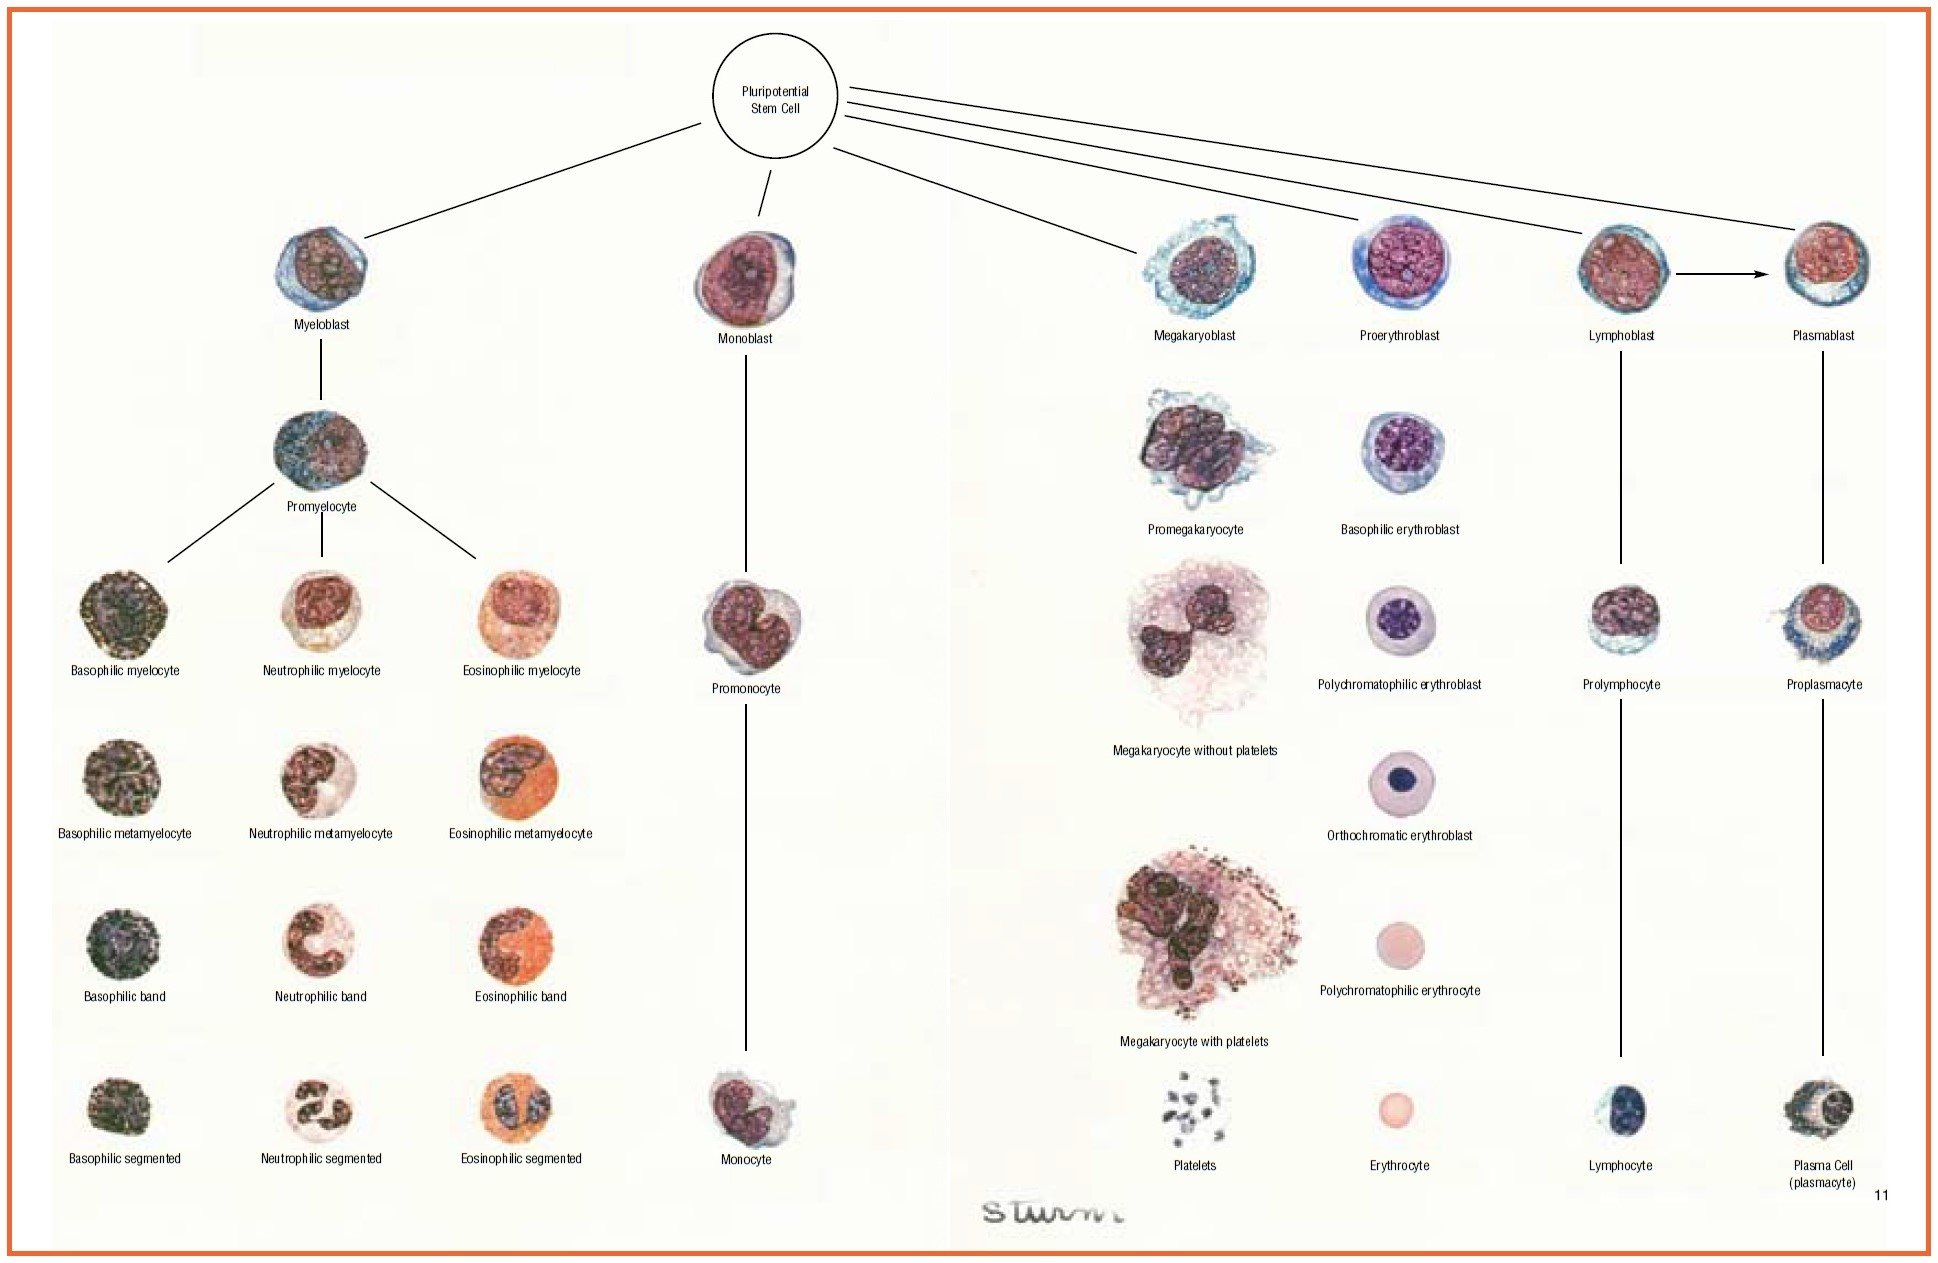 White Blood Cells  Description  Classification And